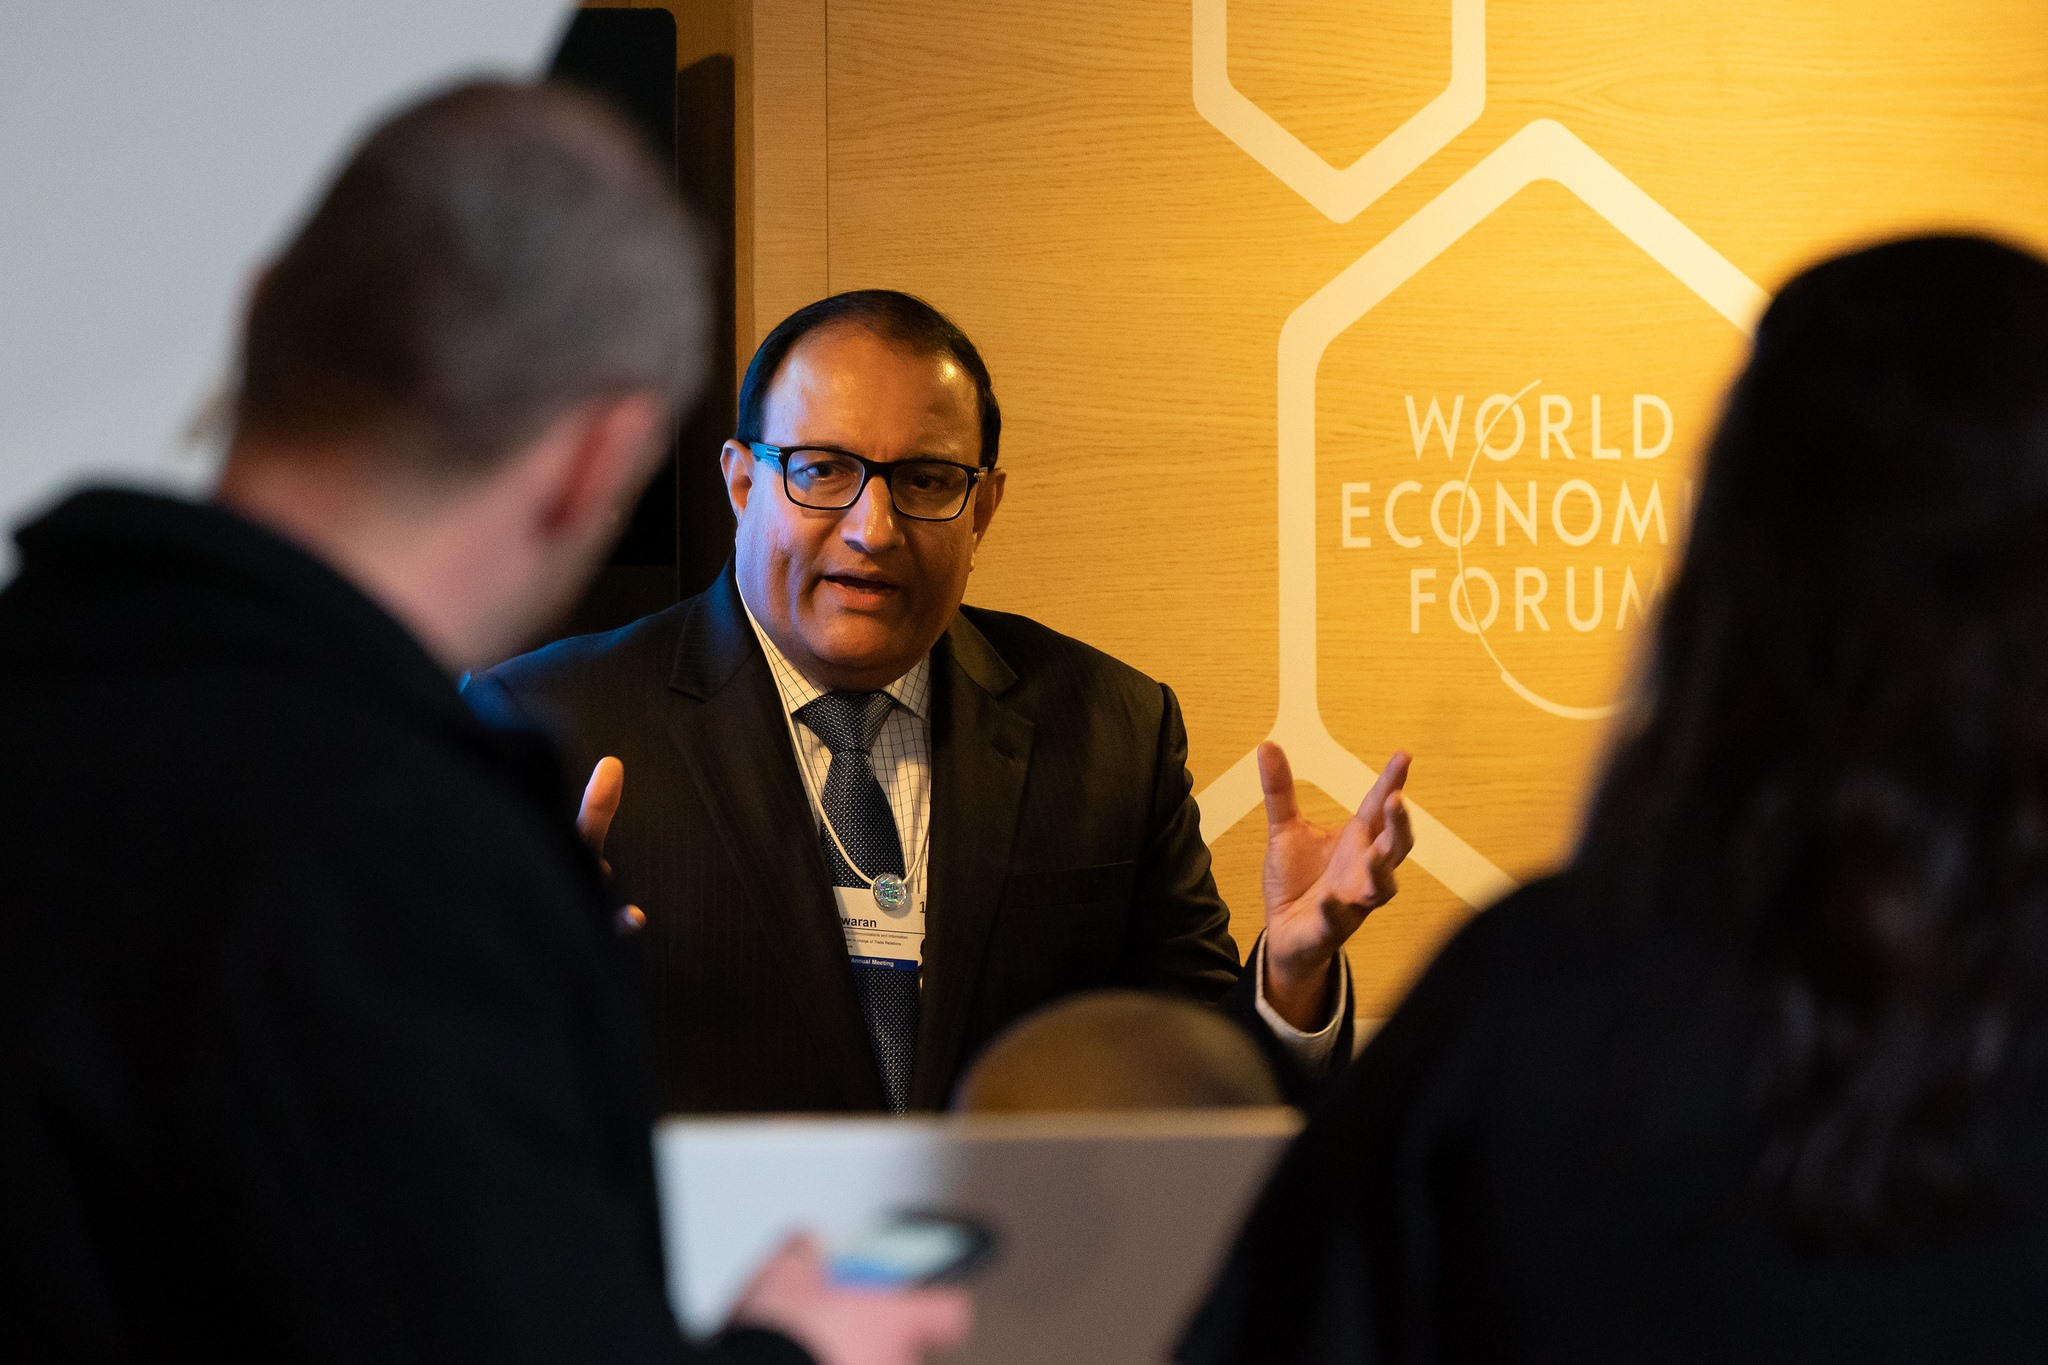 Mr S Iswaran, Minister for Communications and Information, announced the release of Model Artificial Intelligence (AI) Governance Framework at the World Economic Forum Annual Meeting held in Davos from January 22 to 25, 2019. Photo courtesy: World Economic Forum